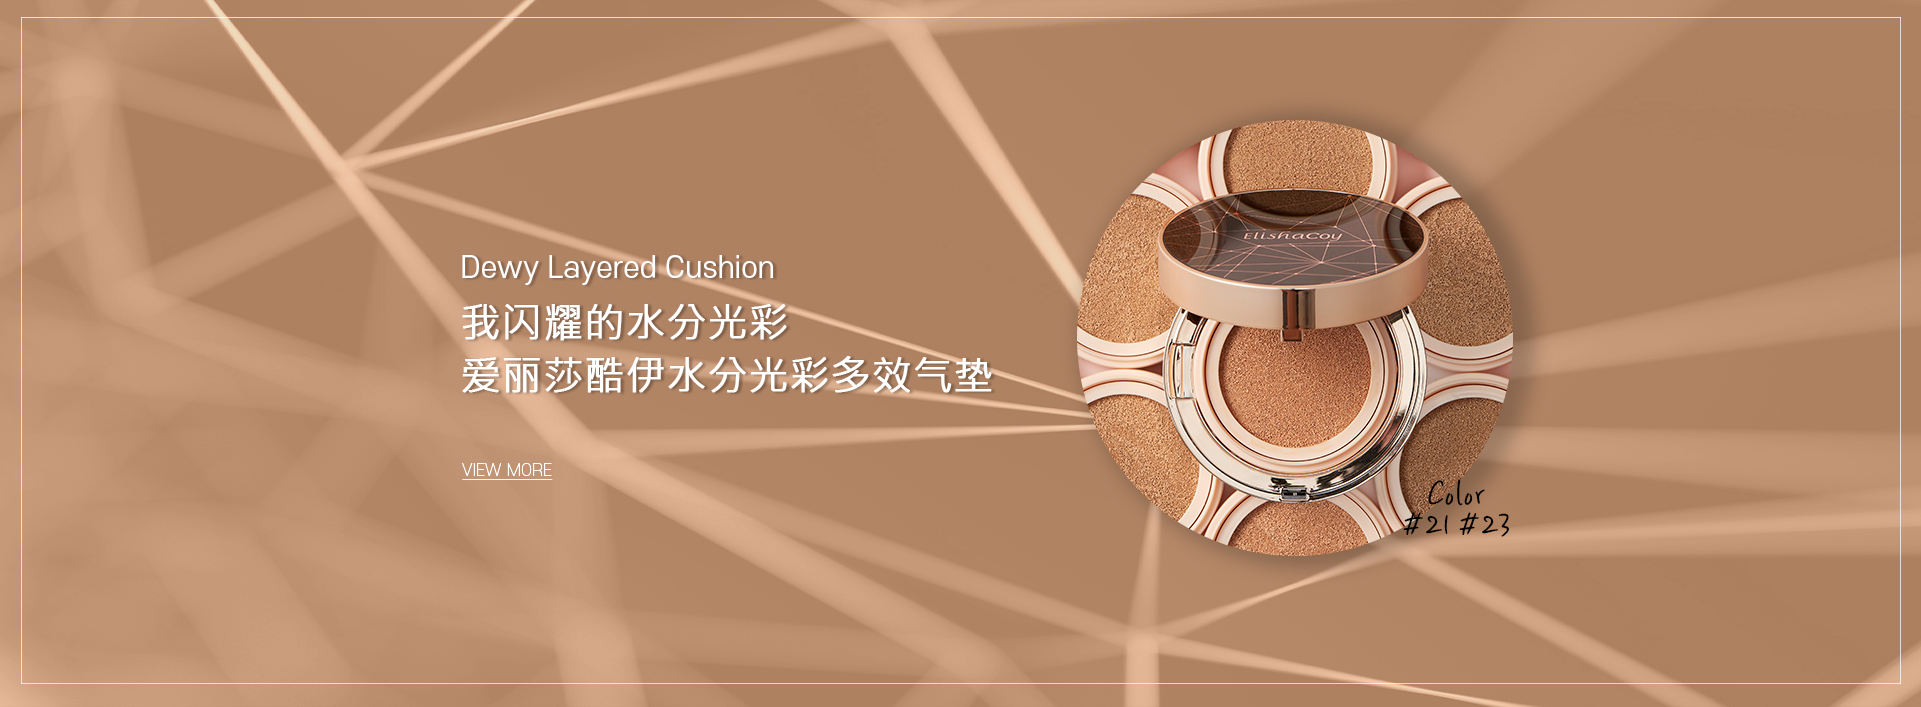 DEWY LAYERED CUSHION